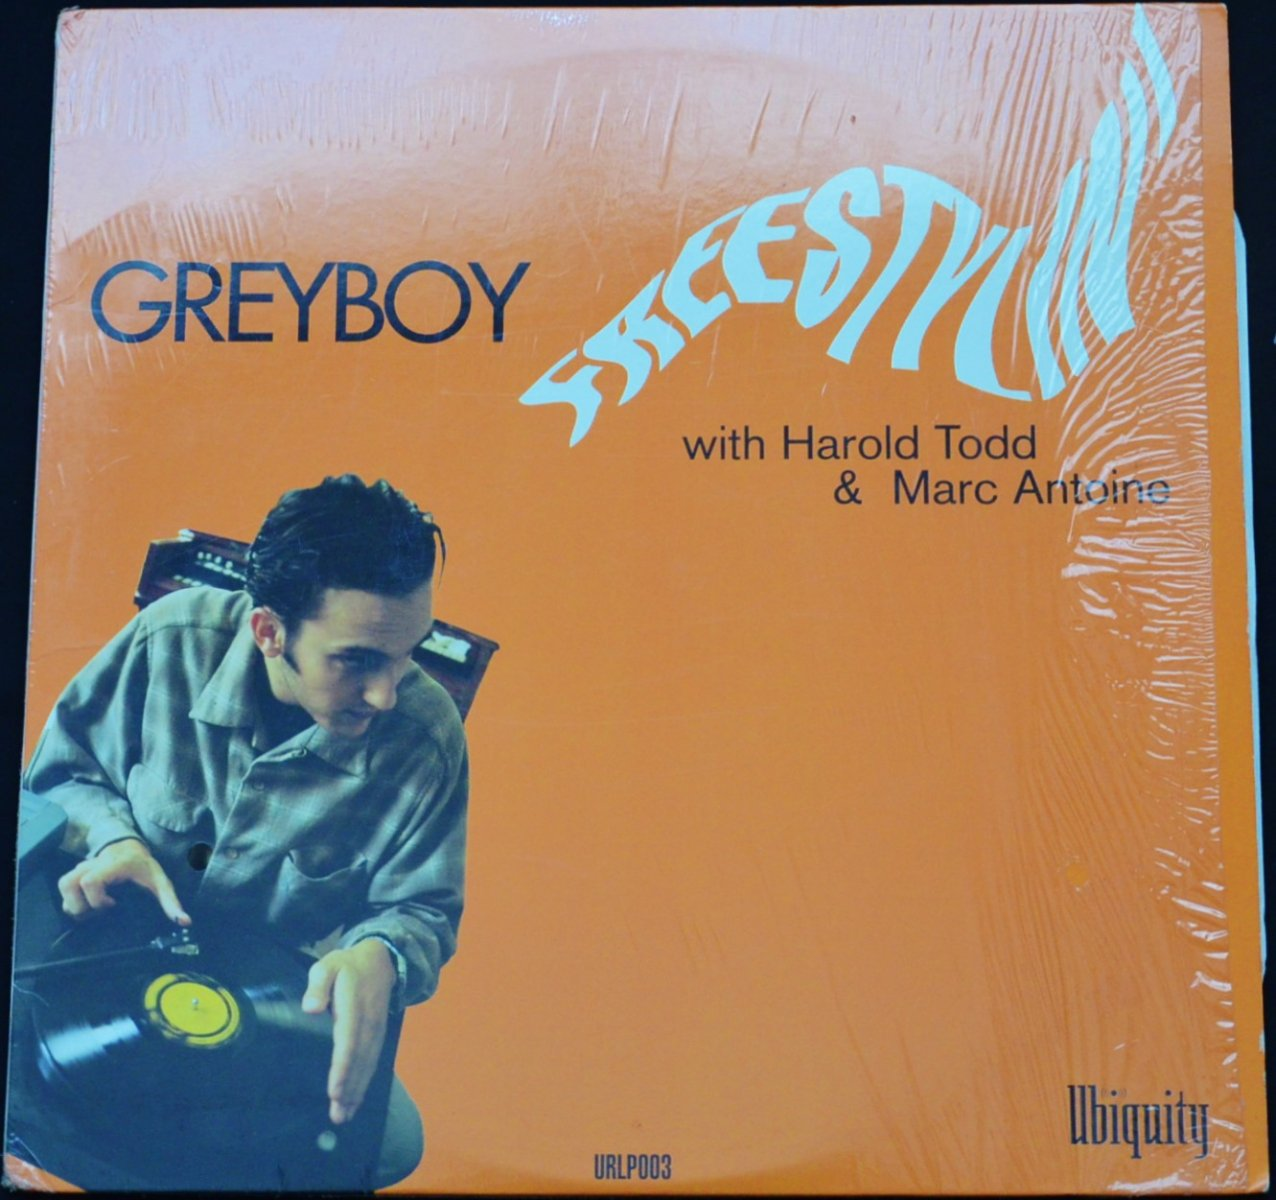 GREYBOY WITH HAROLD TODD & MARC ANTOINE ‎/ FREESTYLIN' (1LP)